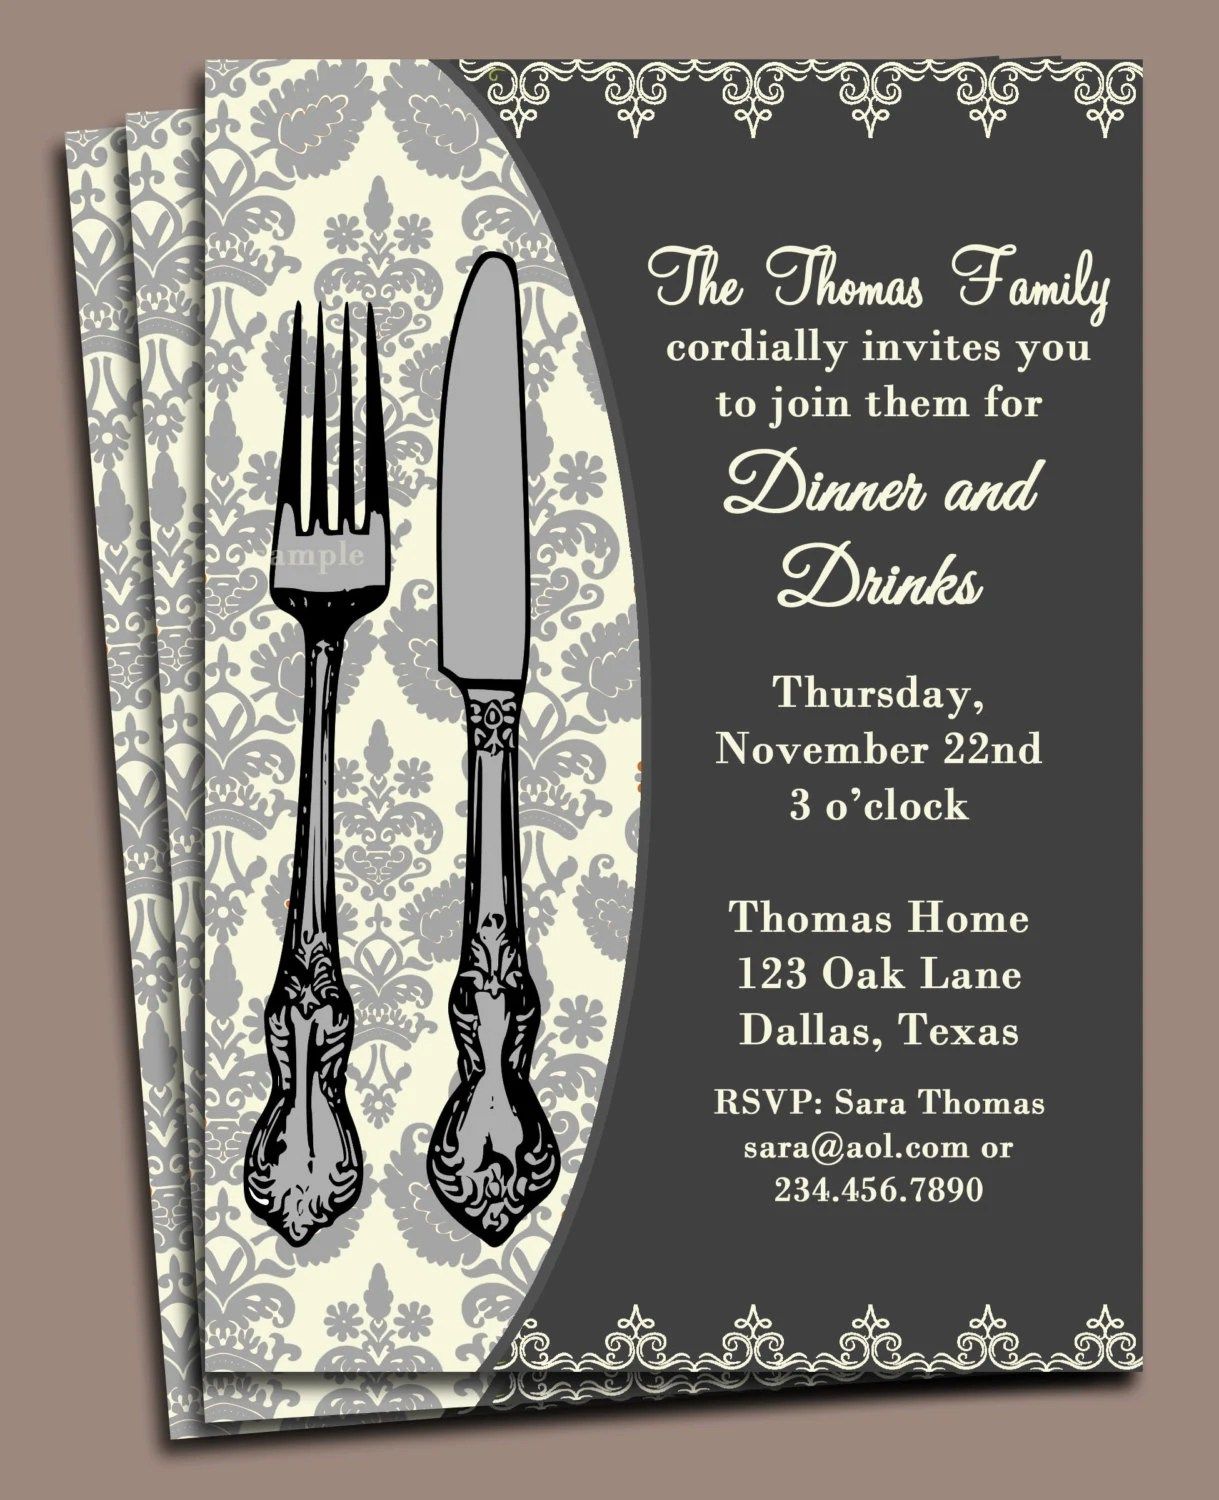 free printable dinner party invitations - Onwebioinnovate - Free Printable Dinner Party Invitations